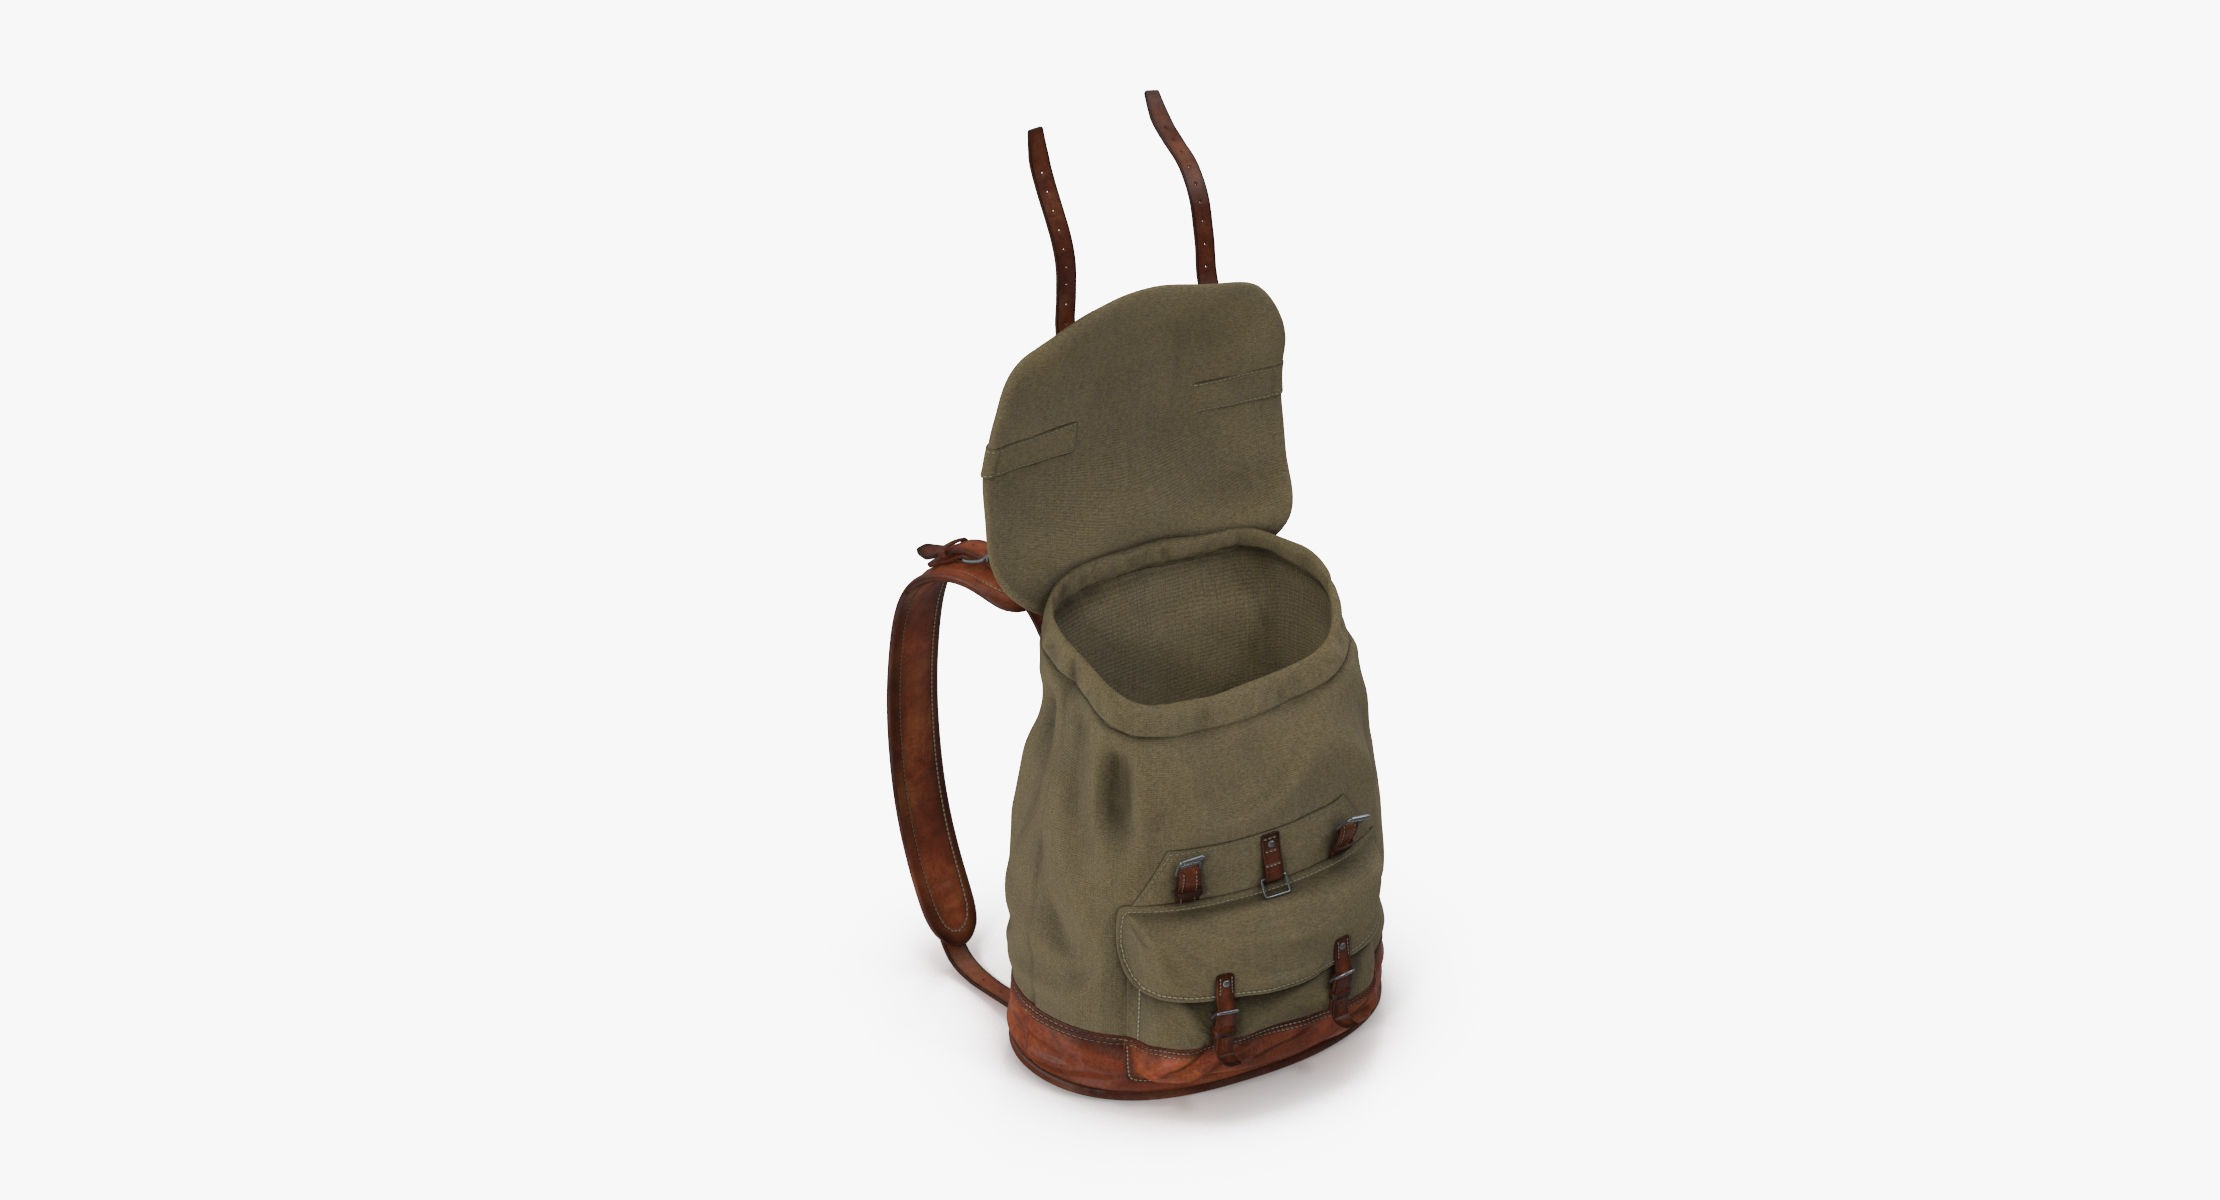 Travel Backpack Standing Open 01 - reel 1